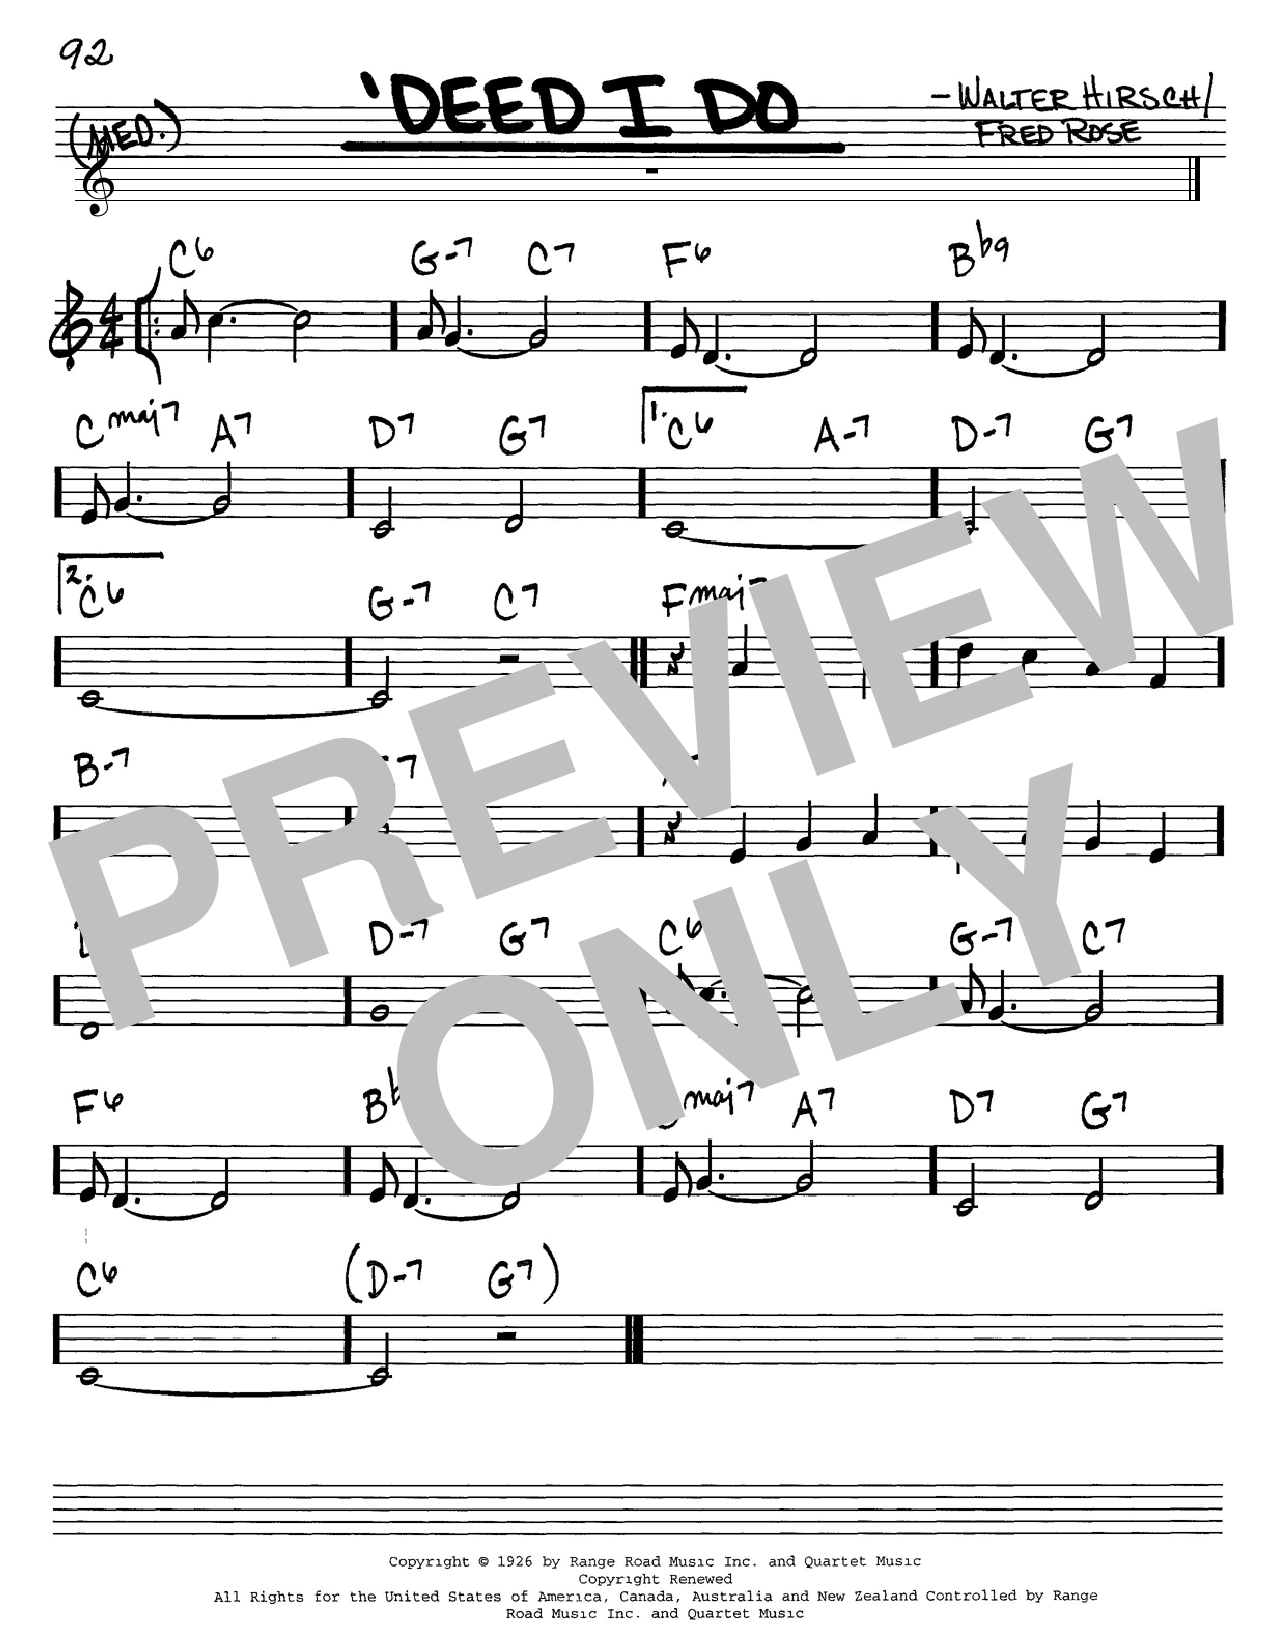 Walter Hirsch 'Deed I Do sheet music notes and chords. Download Printable PDF.